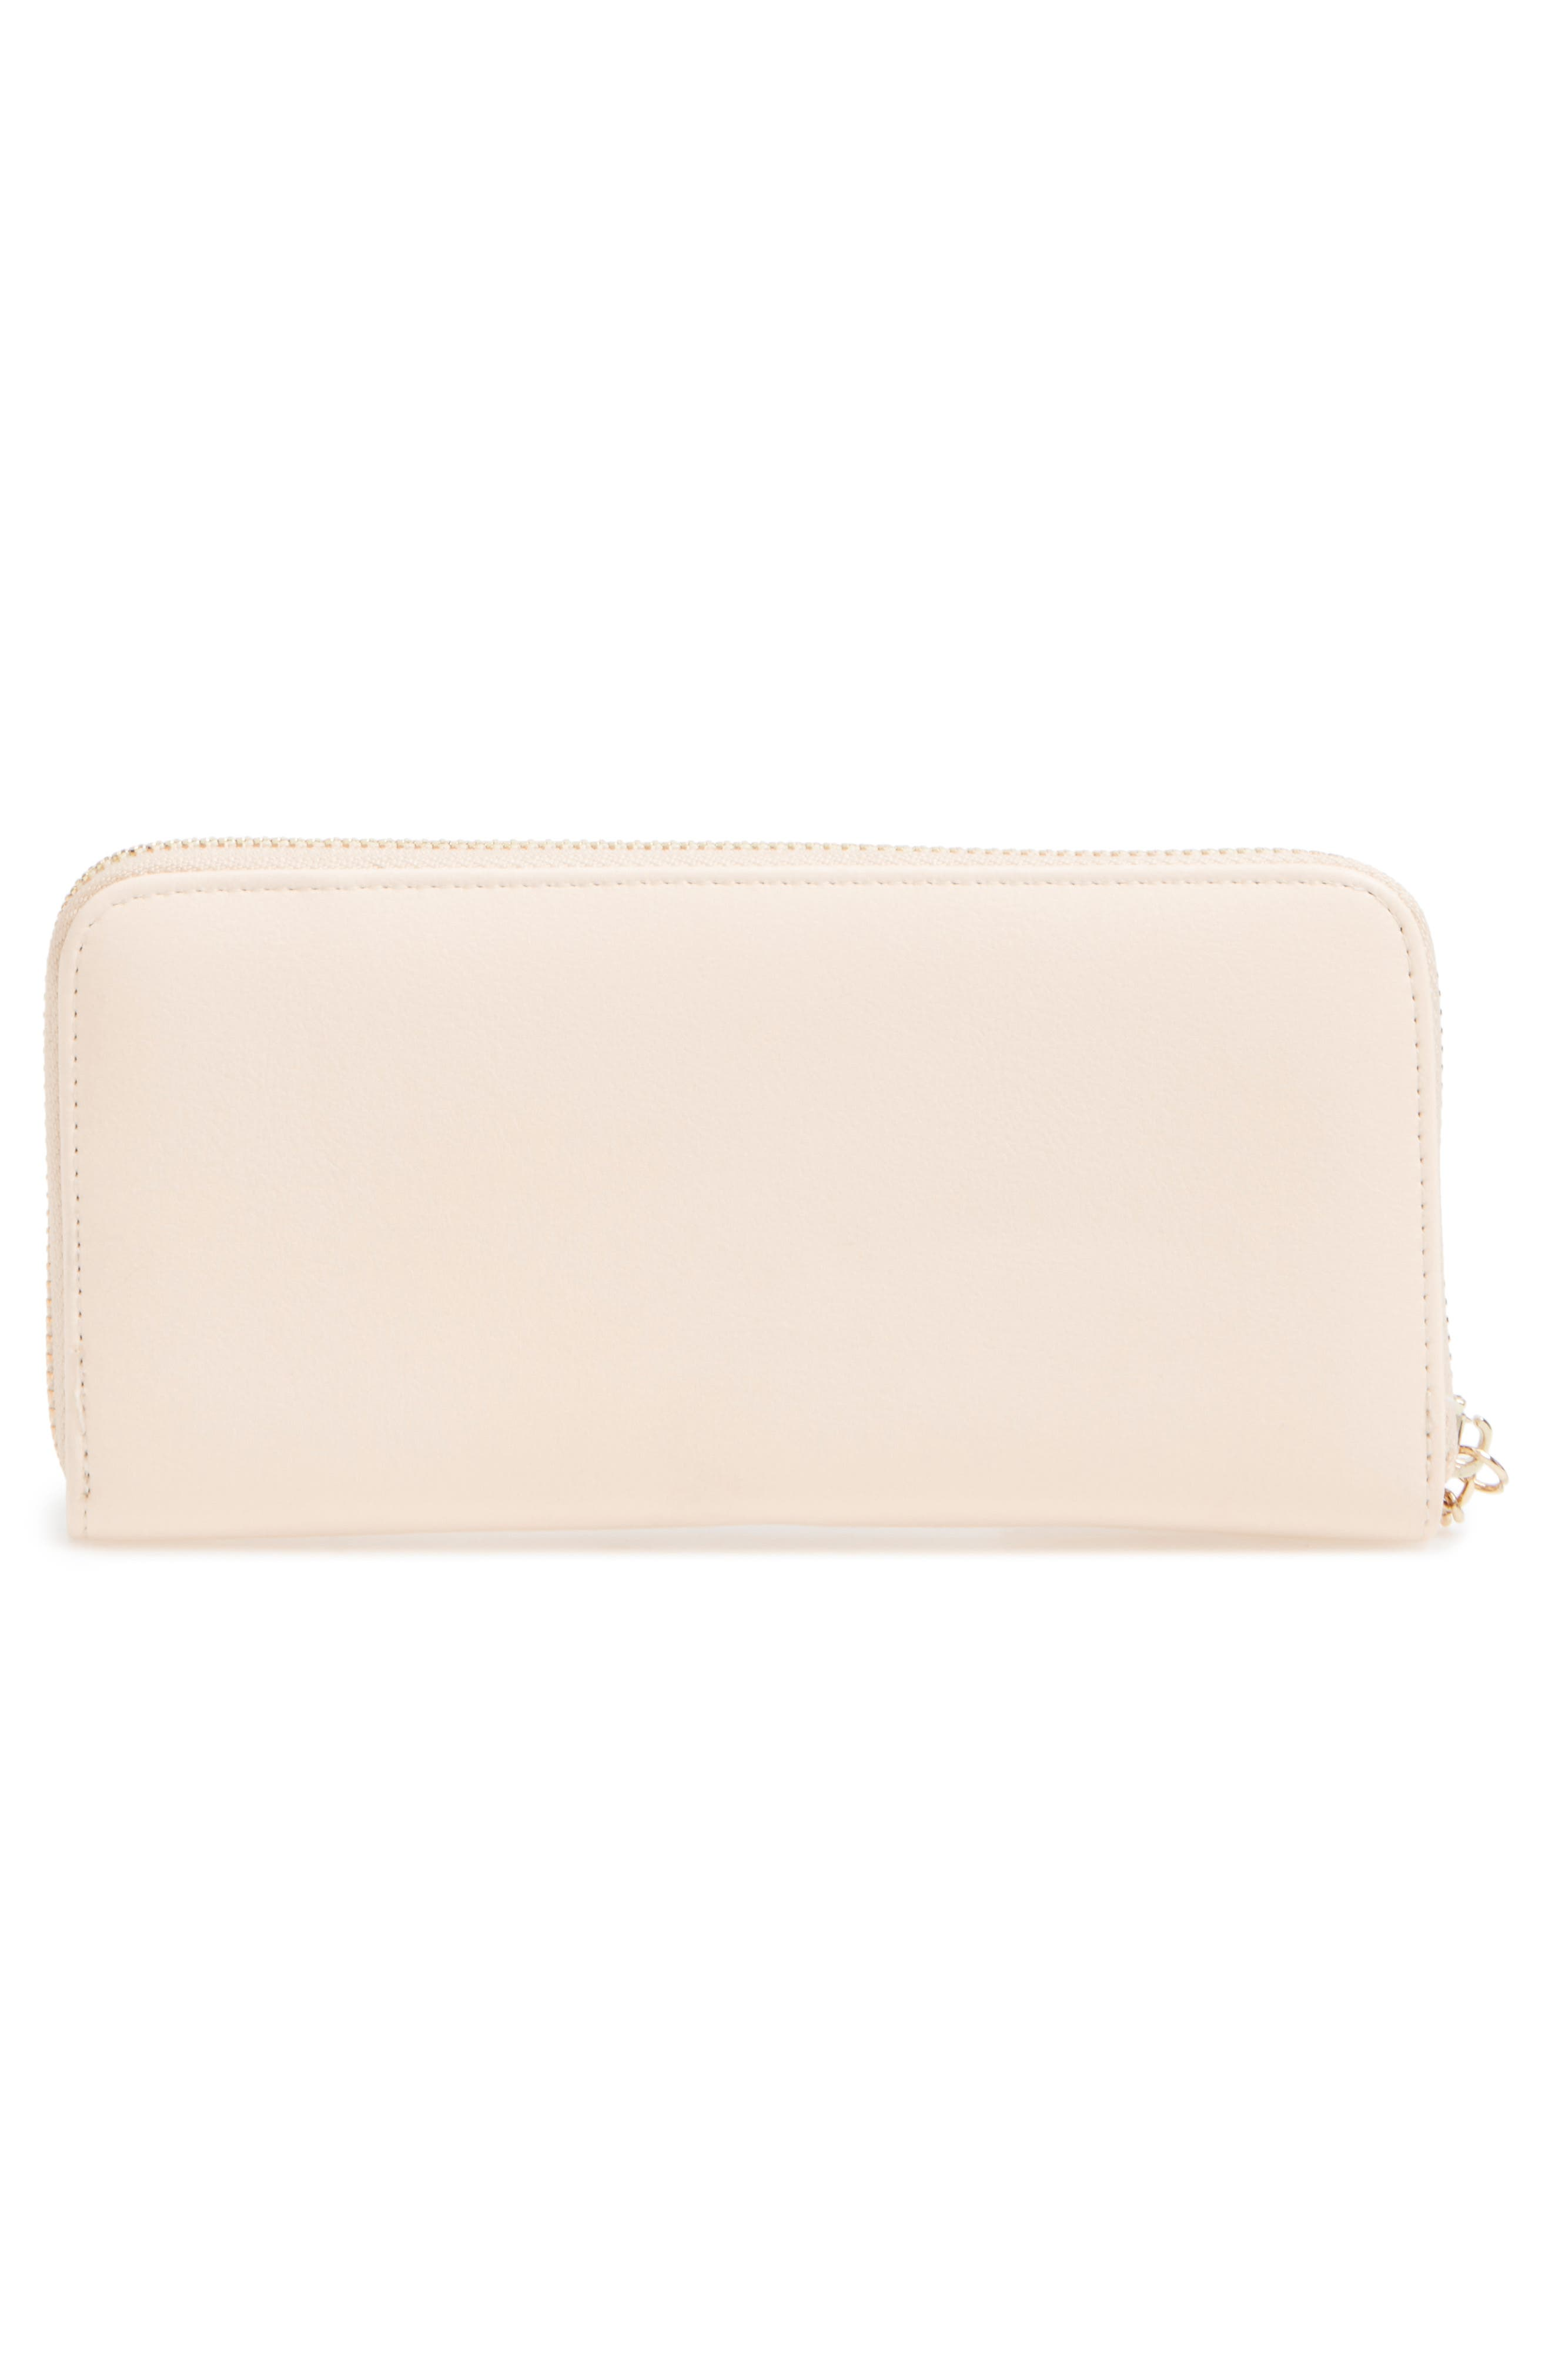 Alternate Image 3  - Emperia Marsha Faux Leather Wallet